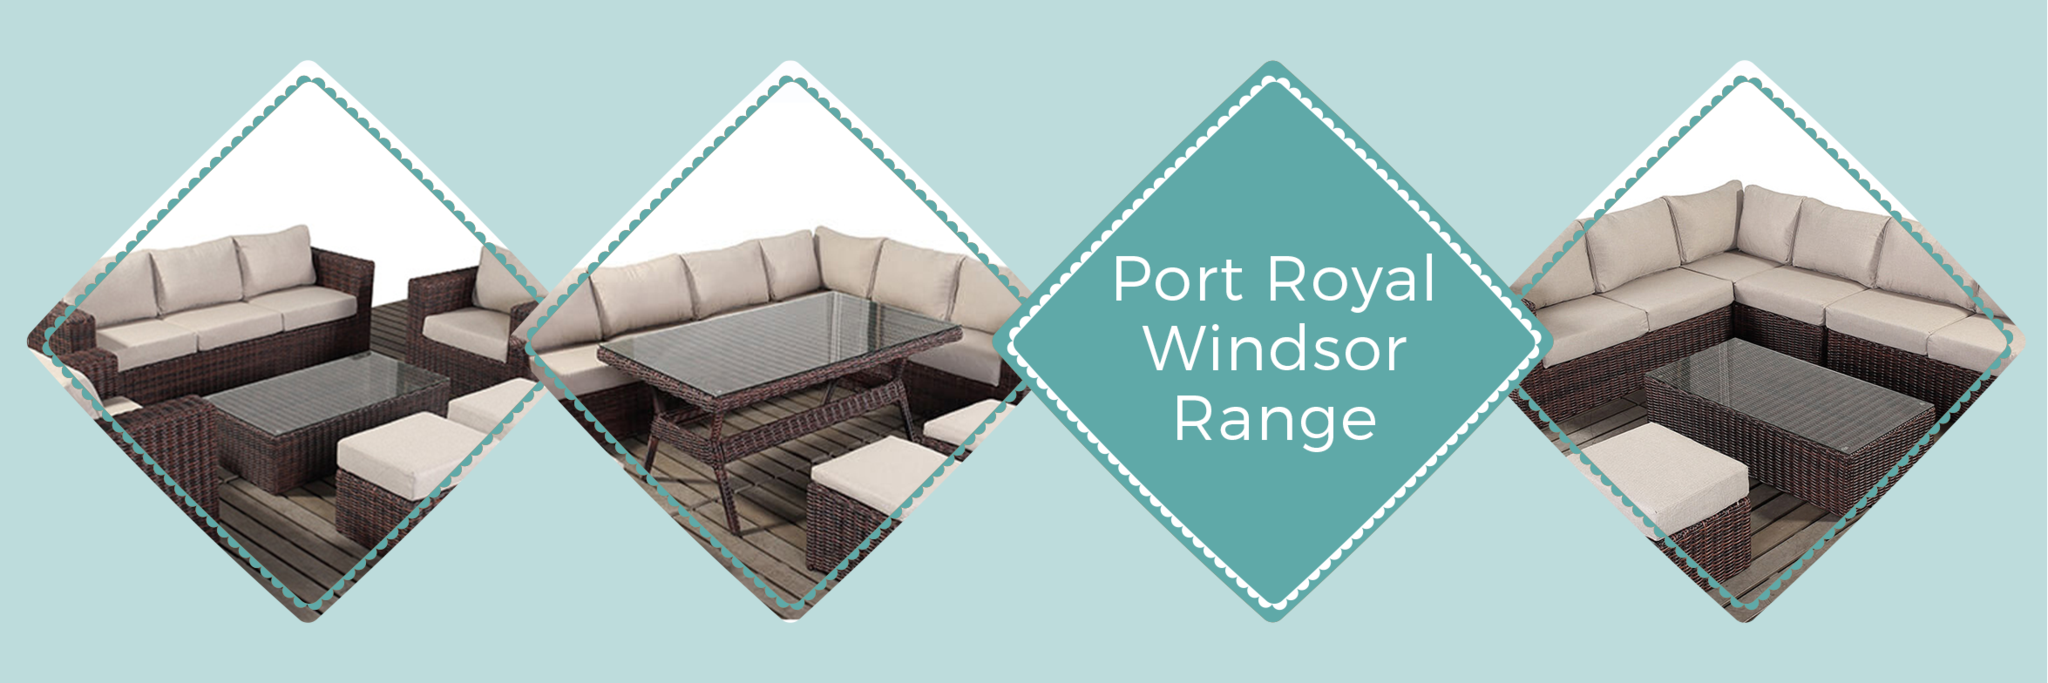 Port Royal Windsor Range